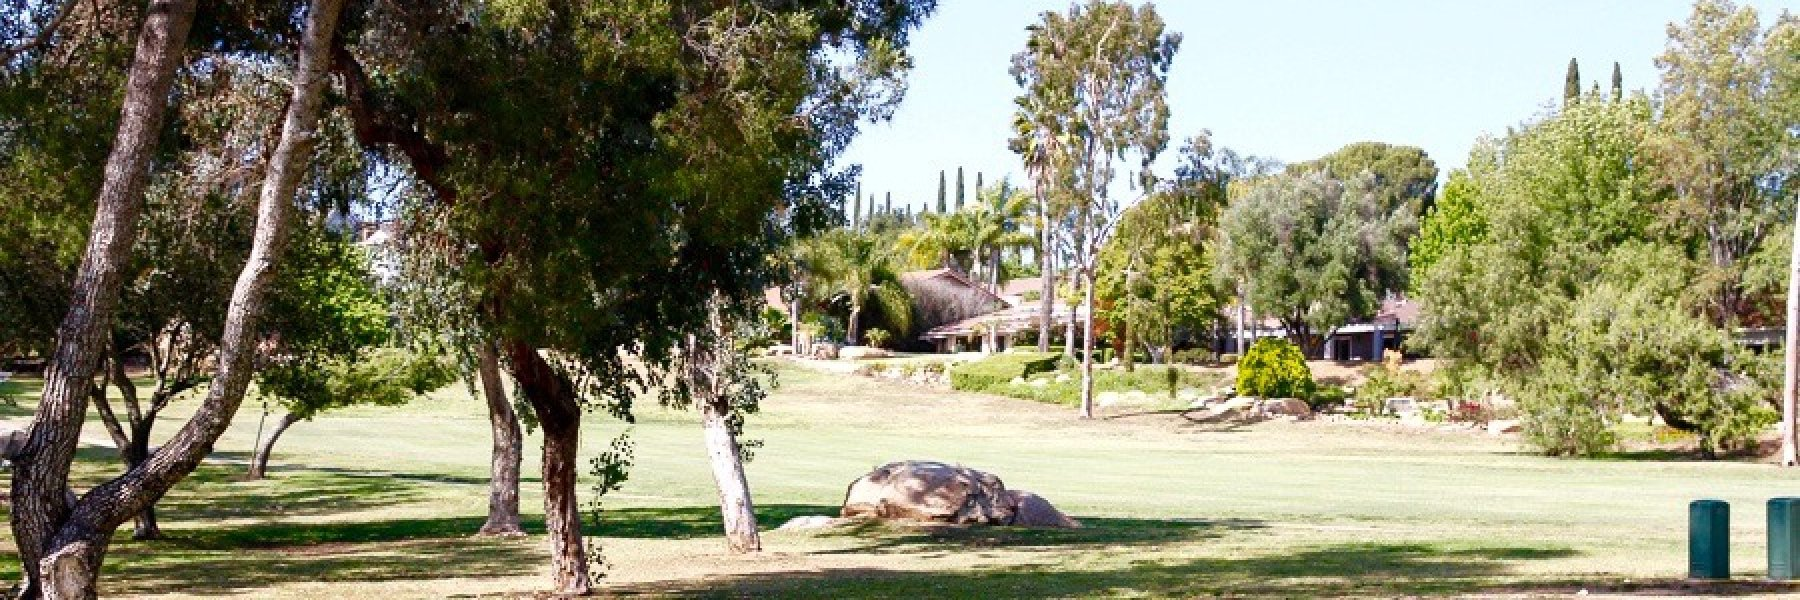 Stoneridge is a community of homes in Poway California